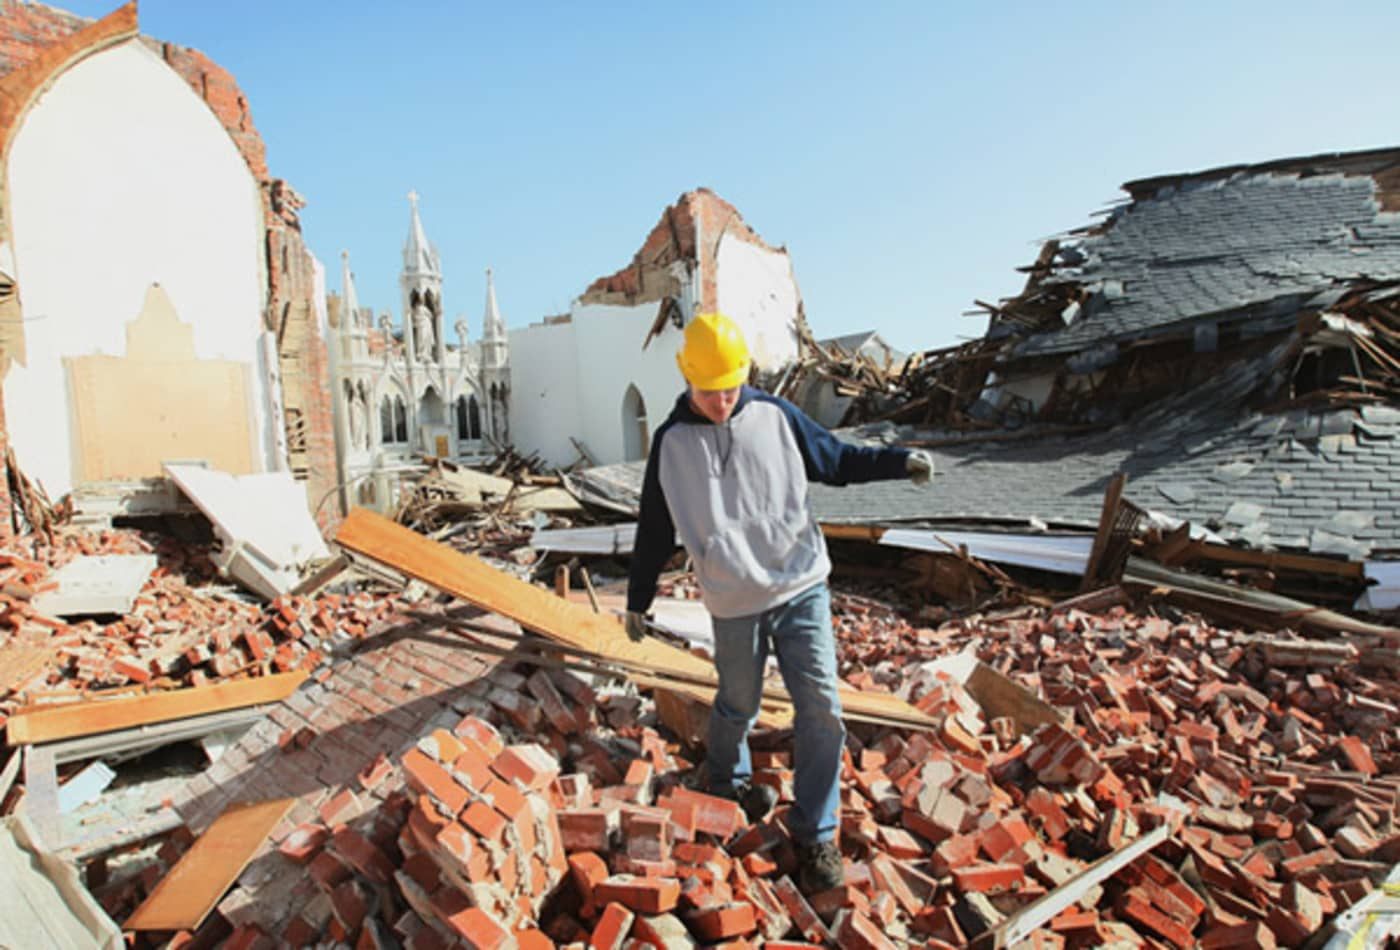 scenes-from-the-midwest-tornadoes-church.jpg